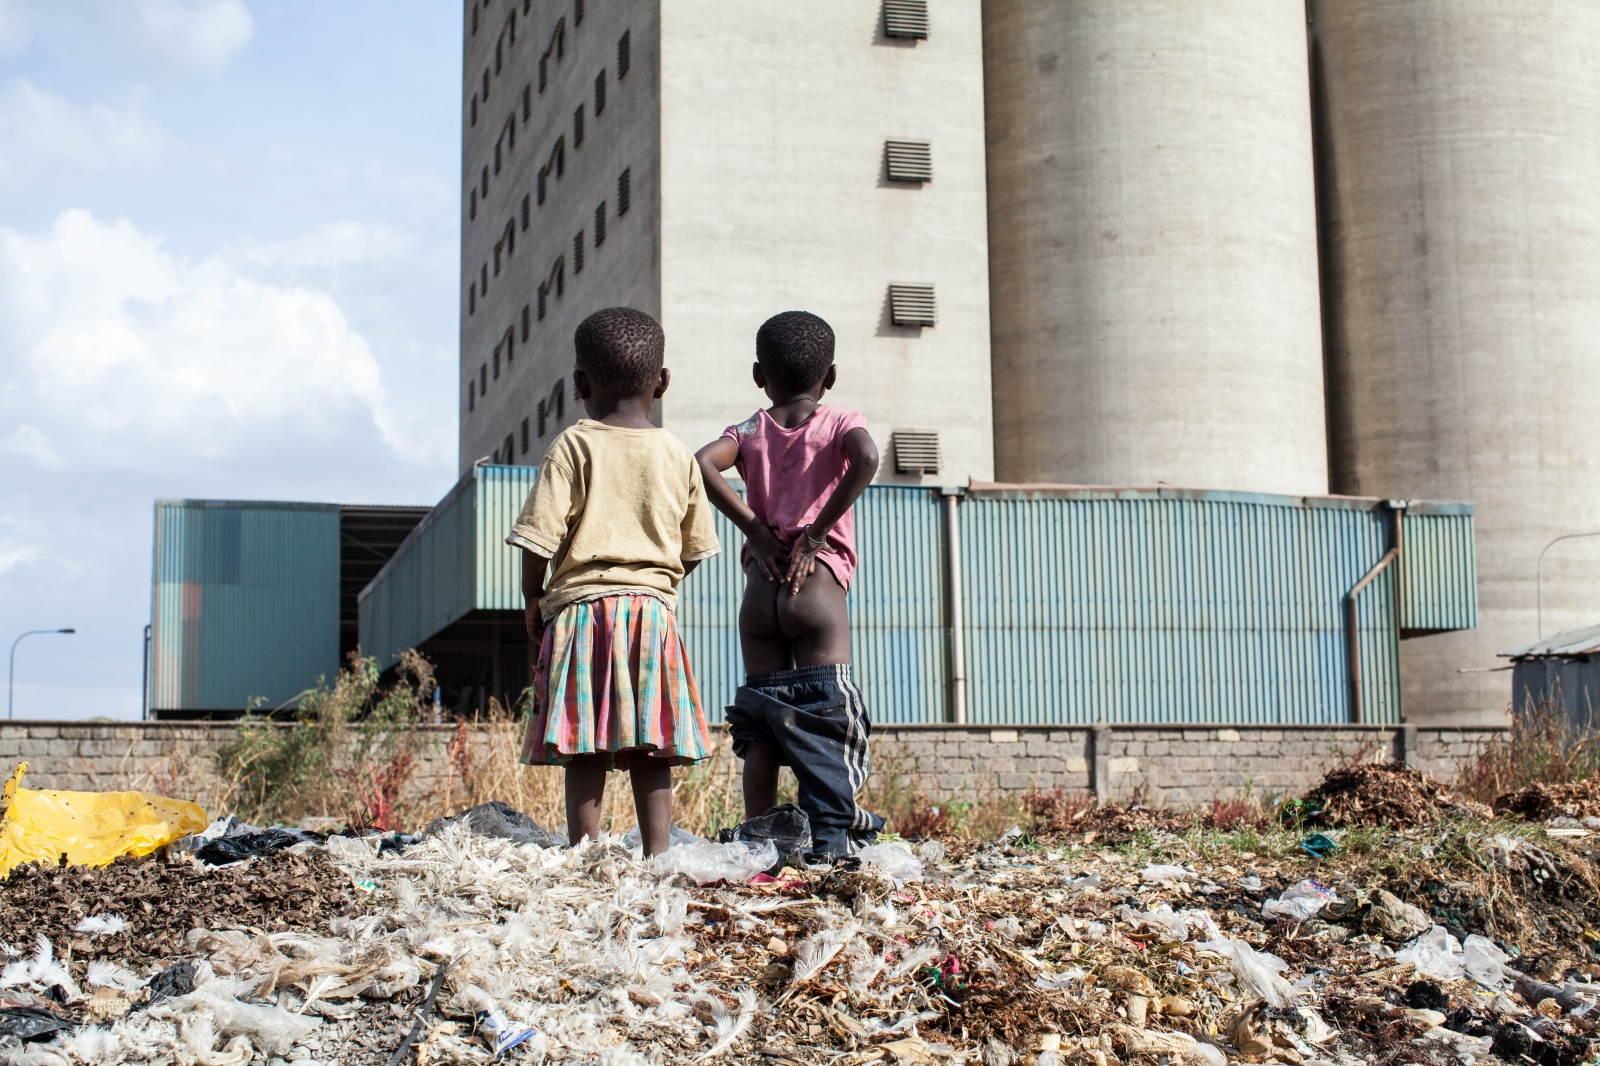 Sinai Slum, Nairobi, KENYA, October 29, 2013: Children standing on a pile of garbage, looking over the walls that seperate the slum from the city.